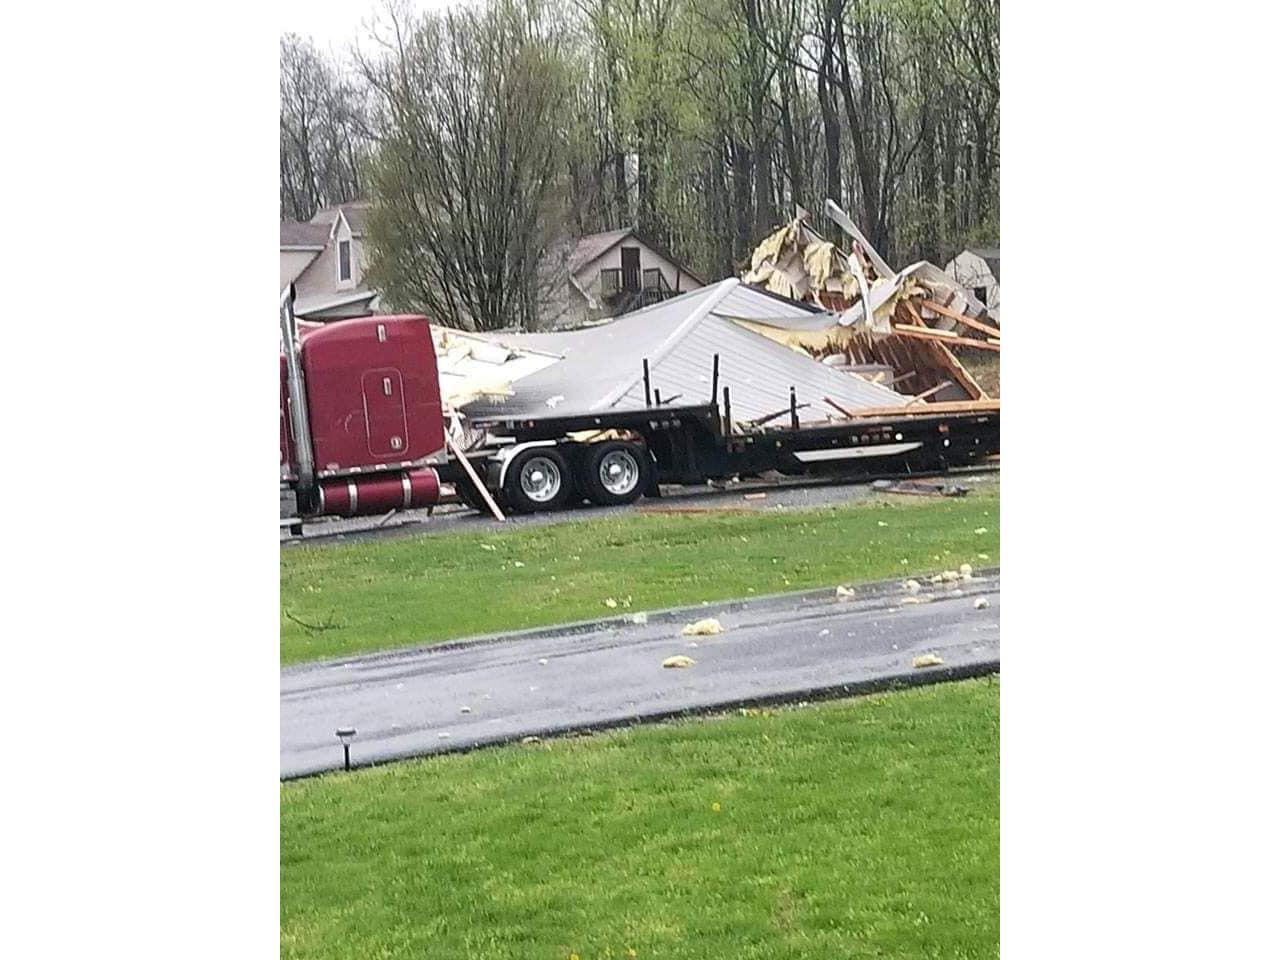 Another tornado in central Pa.? National Weather Service is investigating